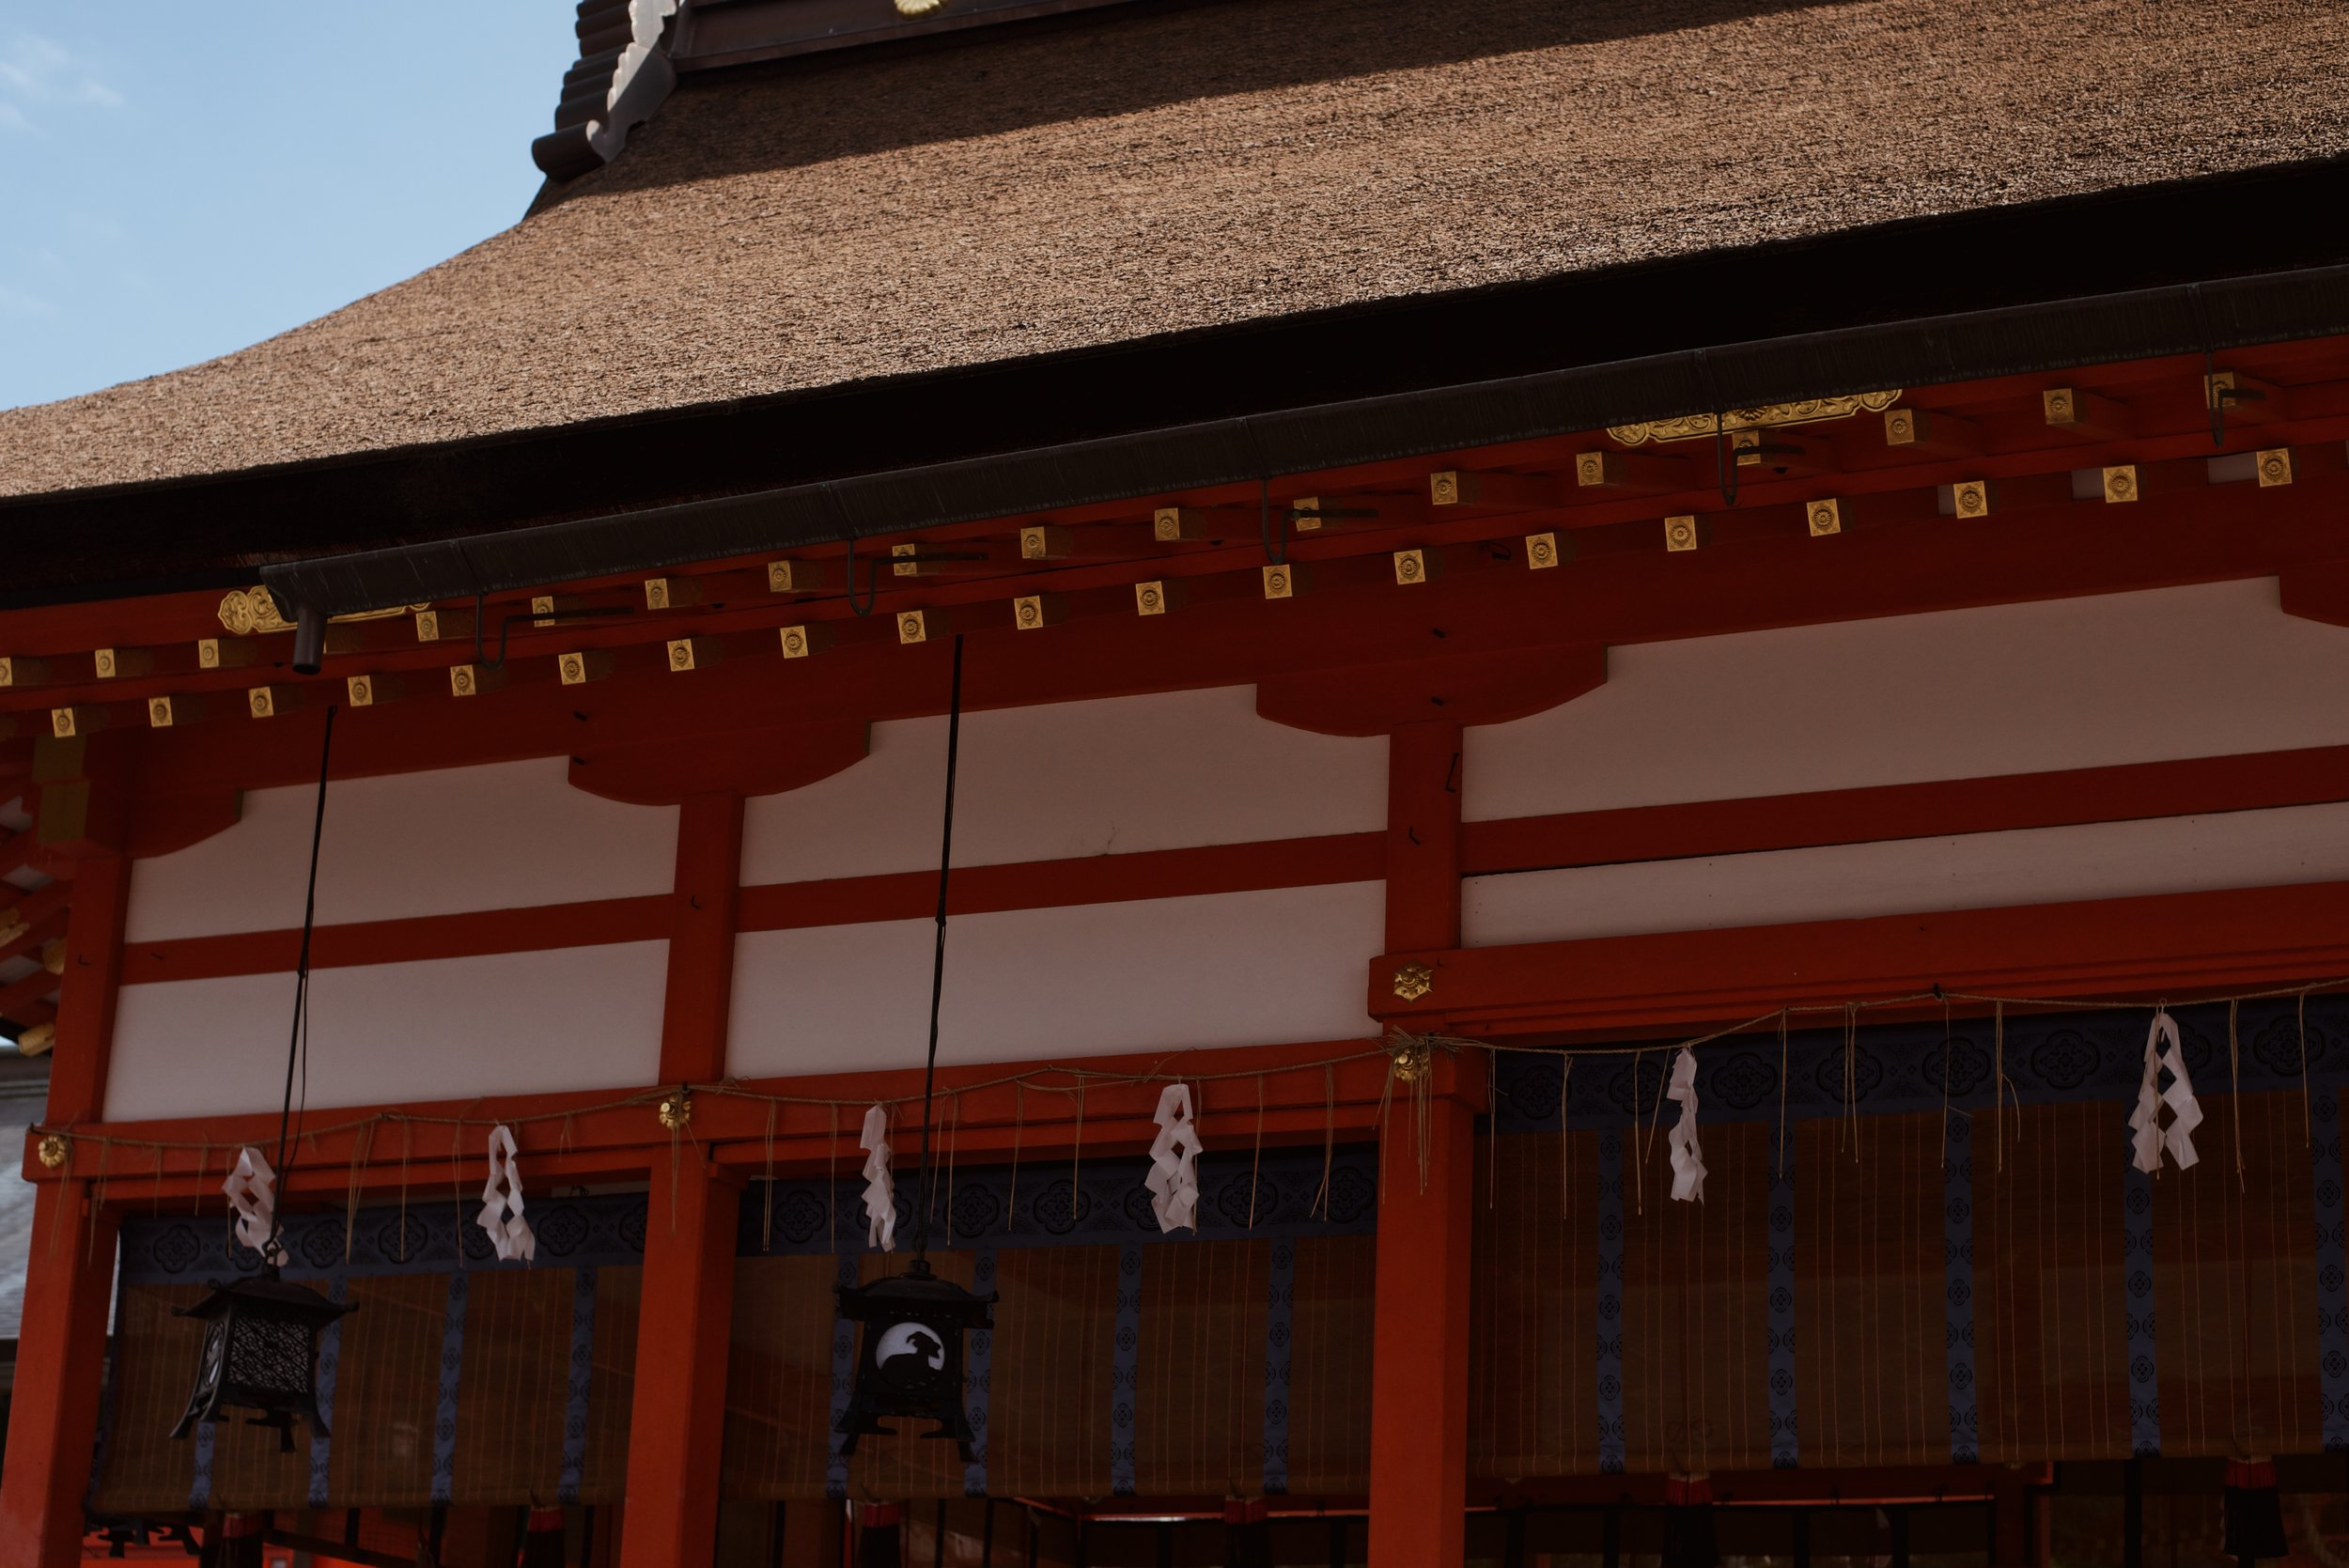 The-Look-Principle-Japanese-Shrines-And-Temples-12.jpg